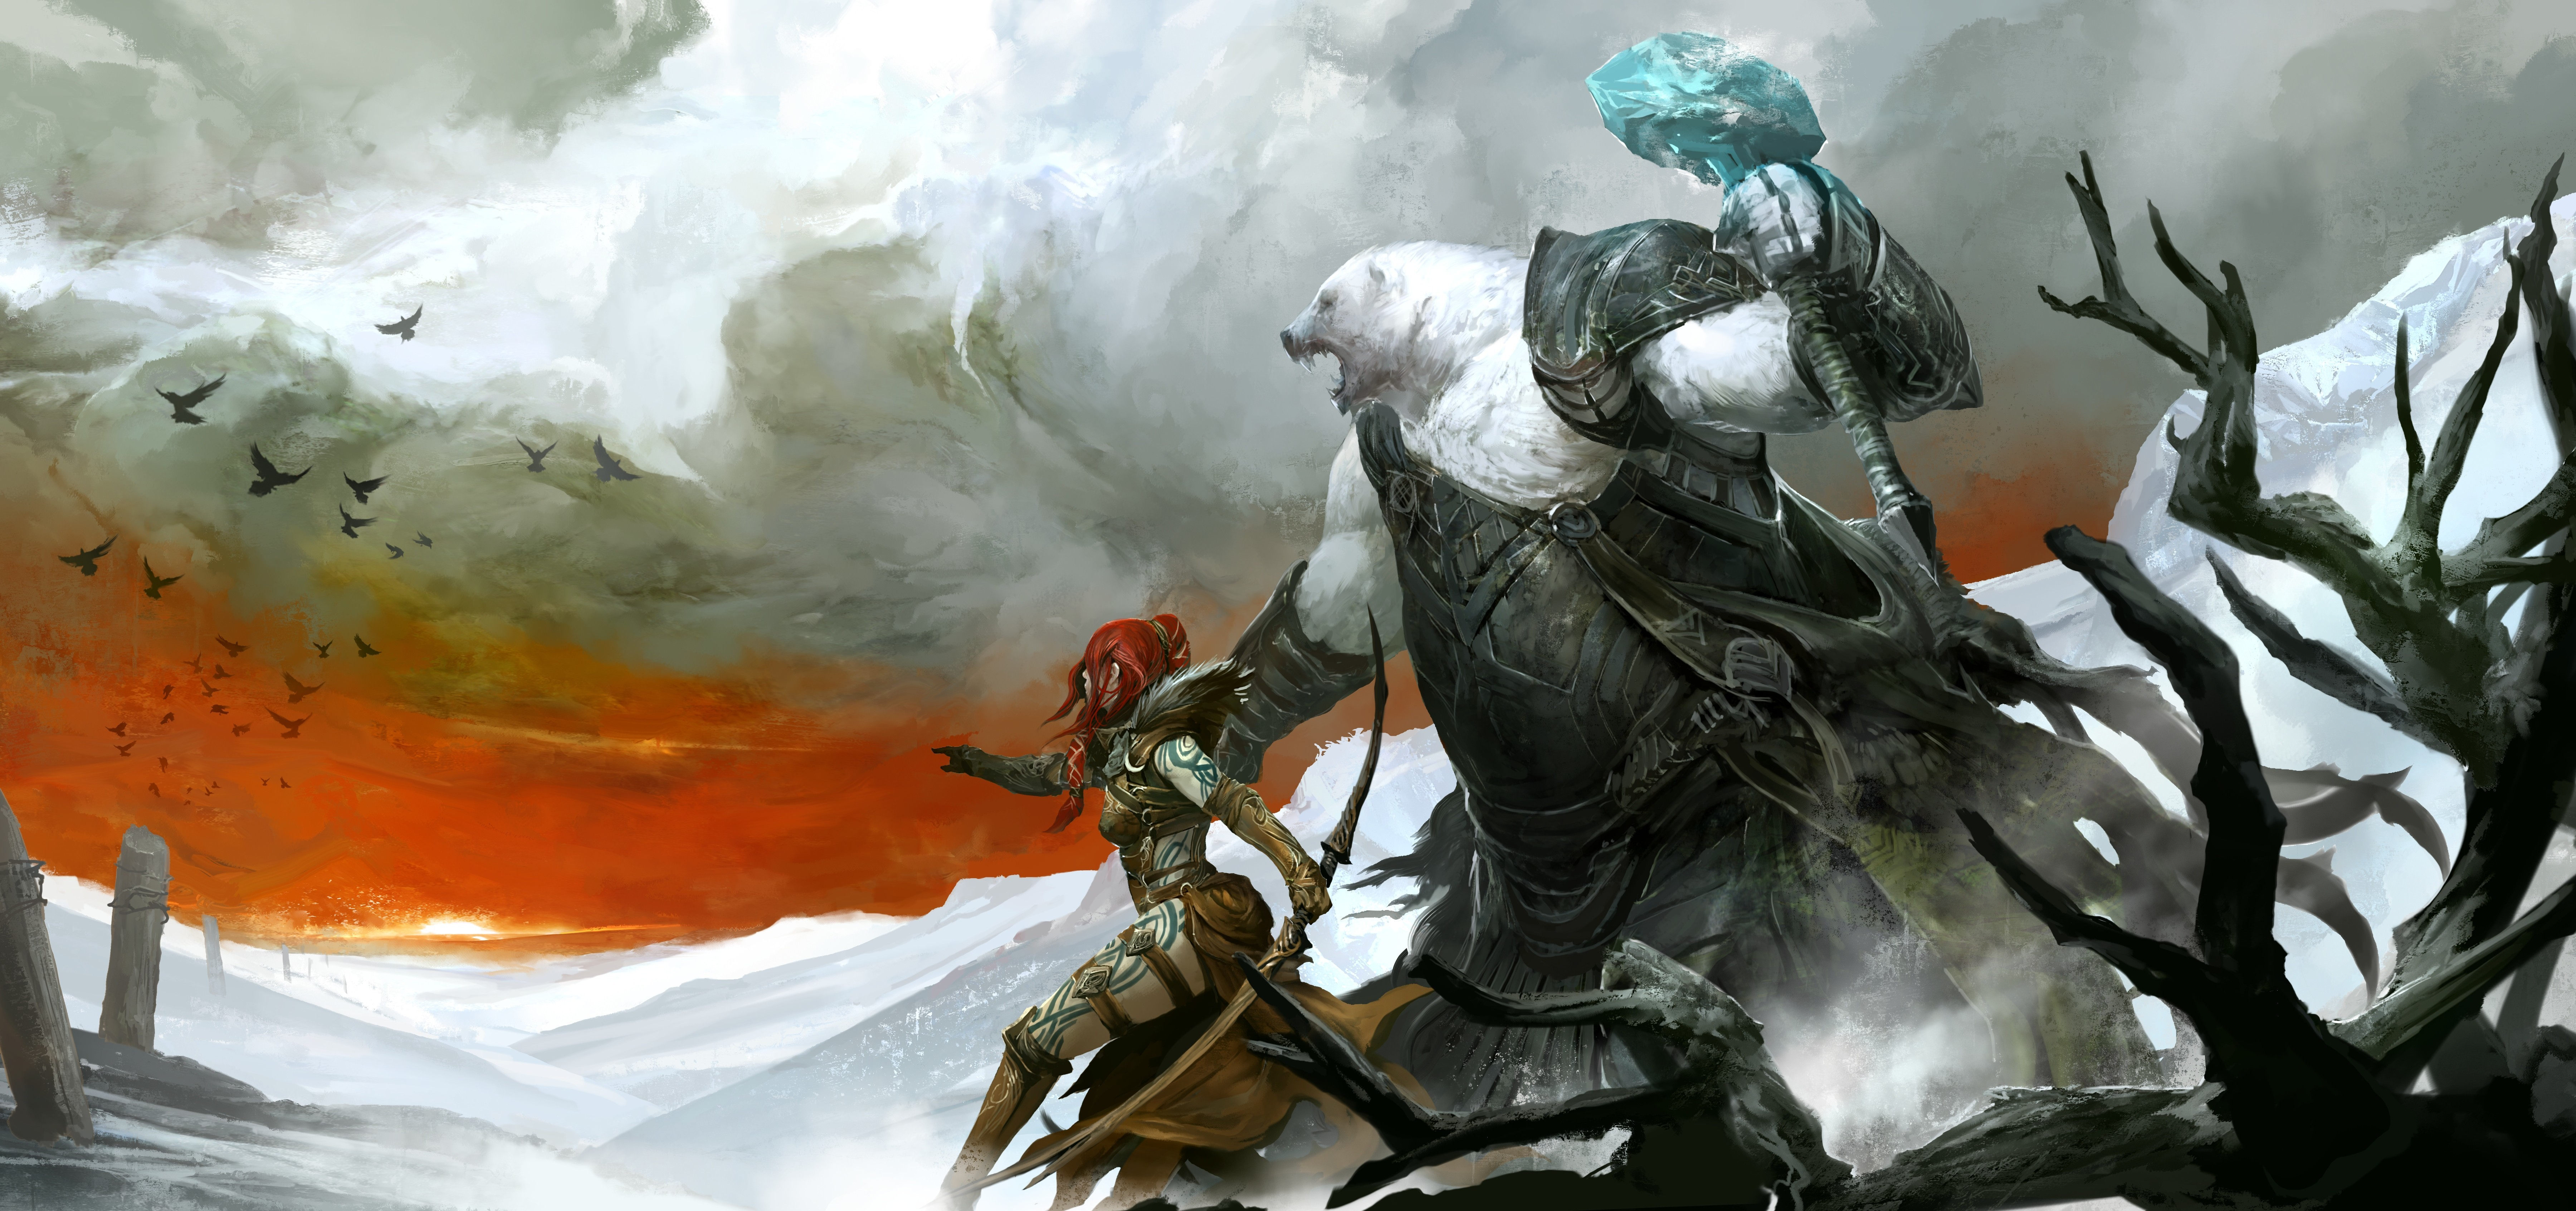 guild wars 2 Eir HD Wallpaper